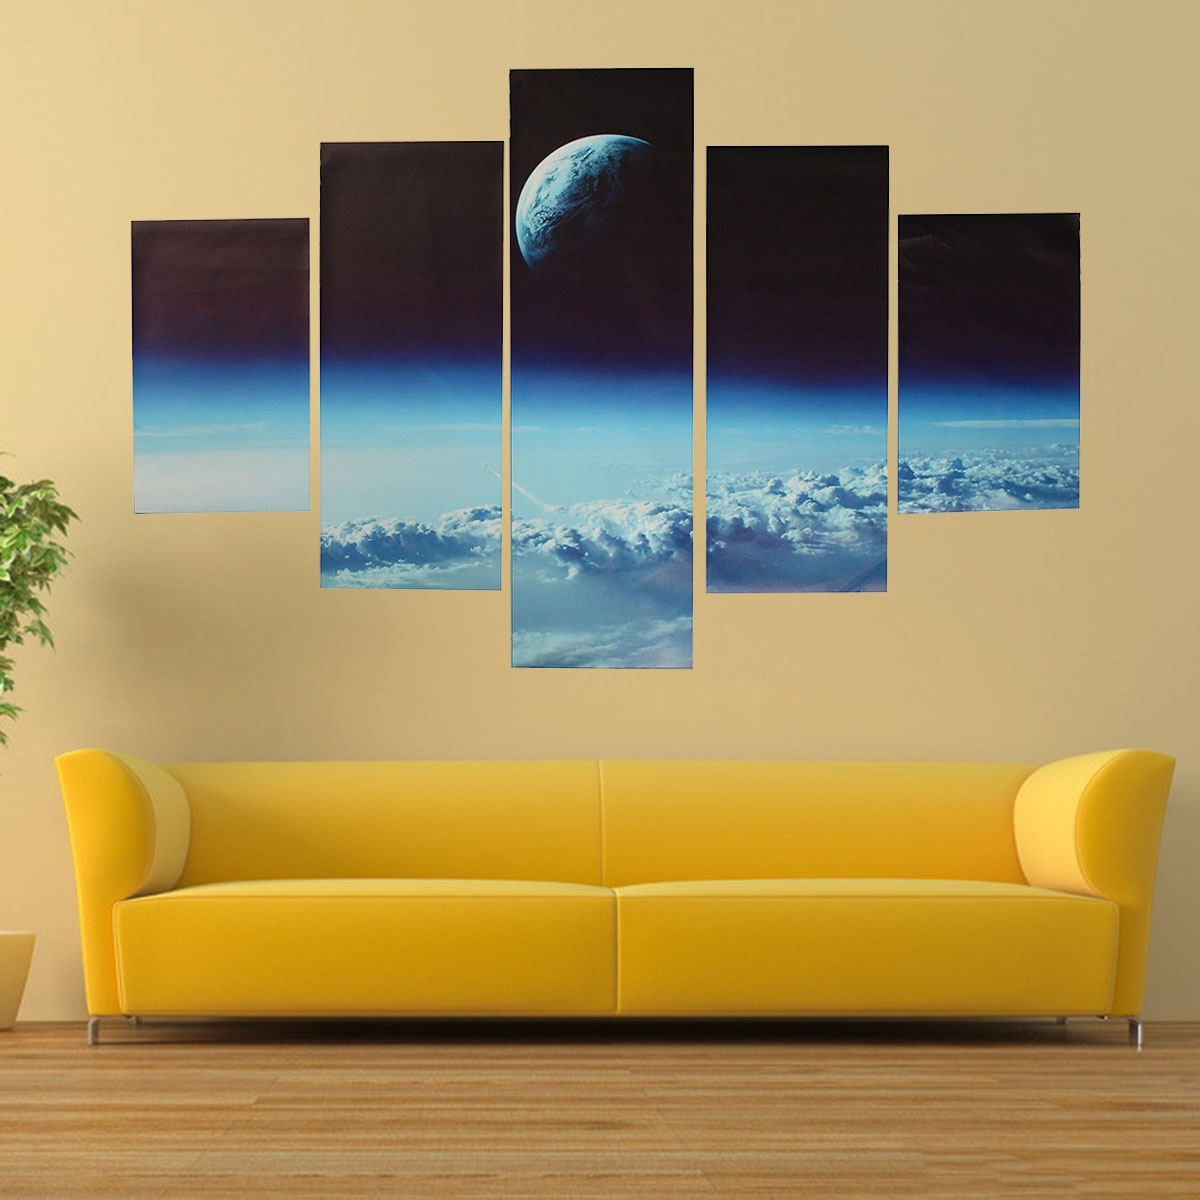 5Pcs Canvas Print Painting Cloud Veil Outer Space Modern Wall Art with regard to Recent Modern Painting Canvas Wall Art